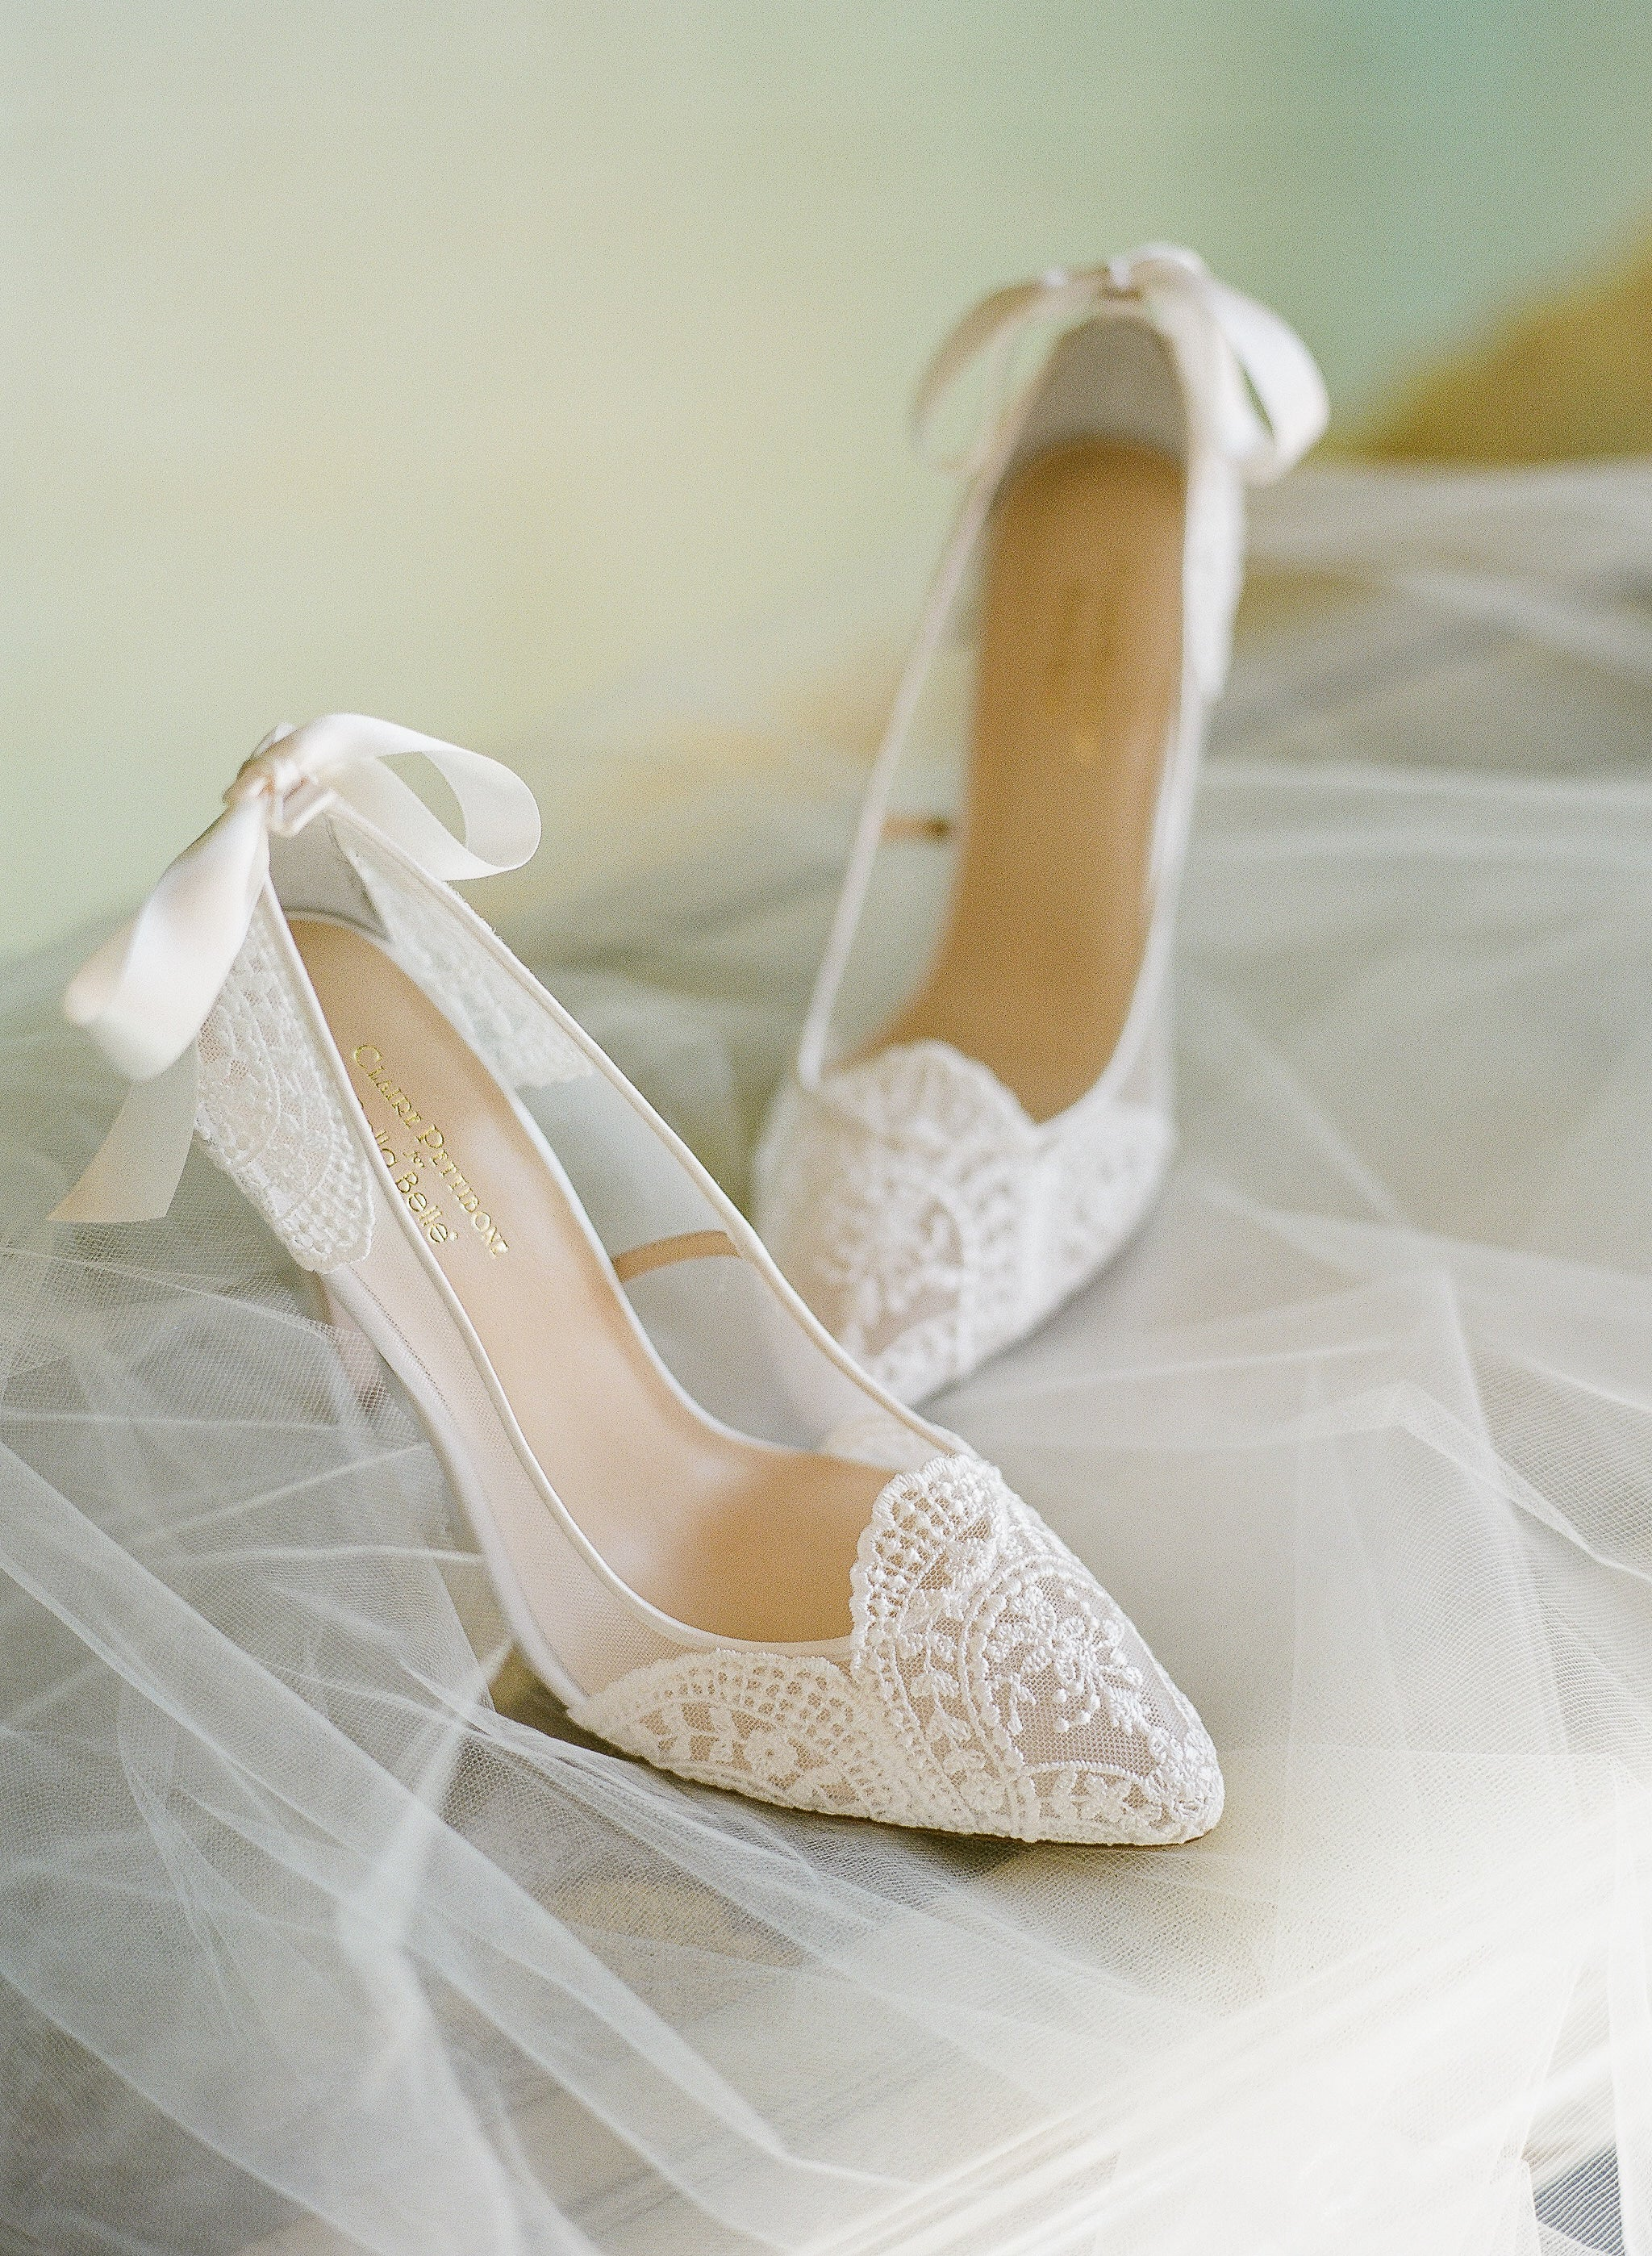 bella belle shoes claire pettibone giselle ivory lace wedding pumps